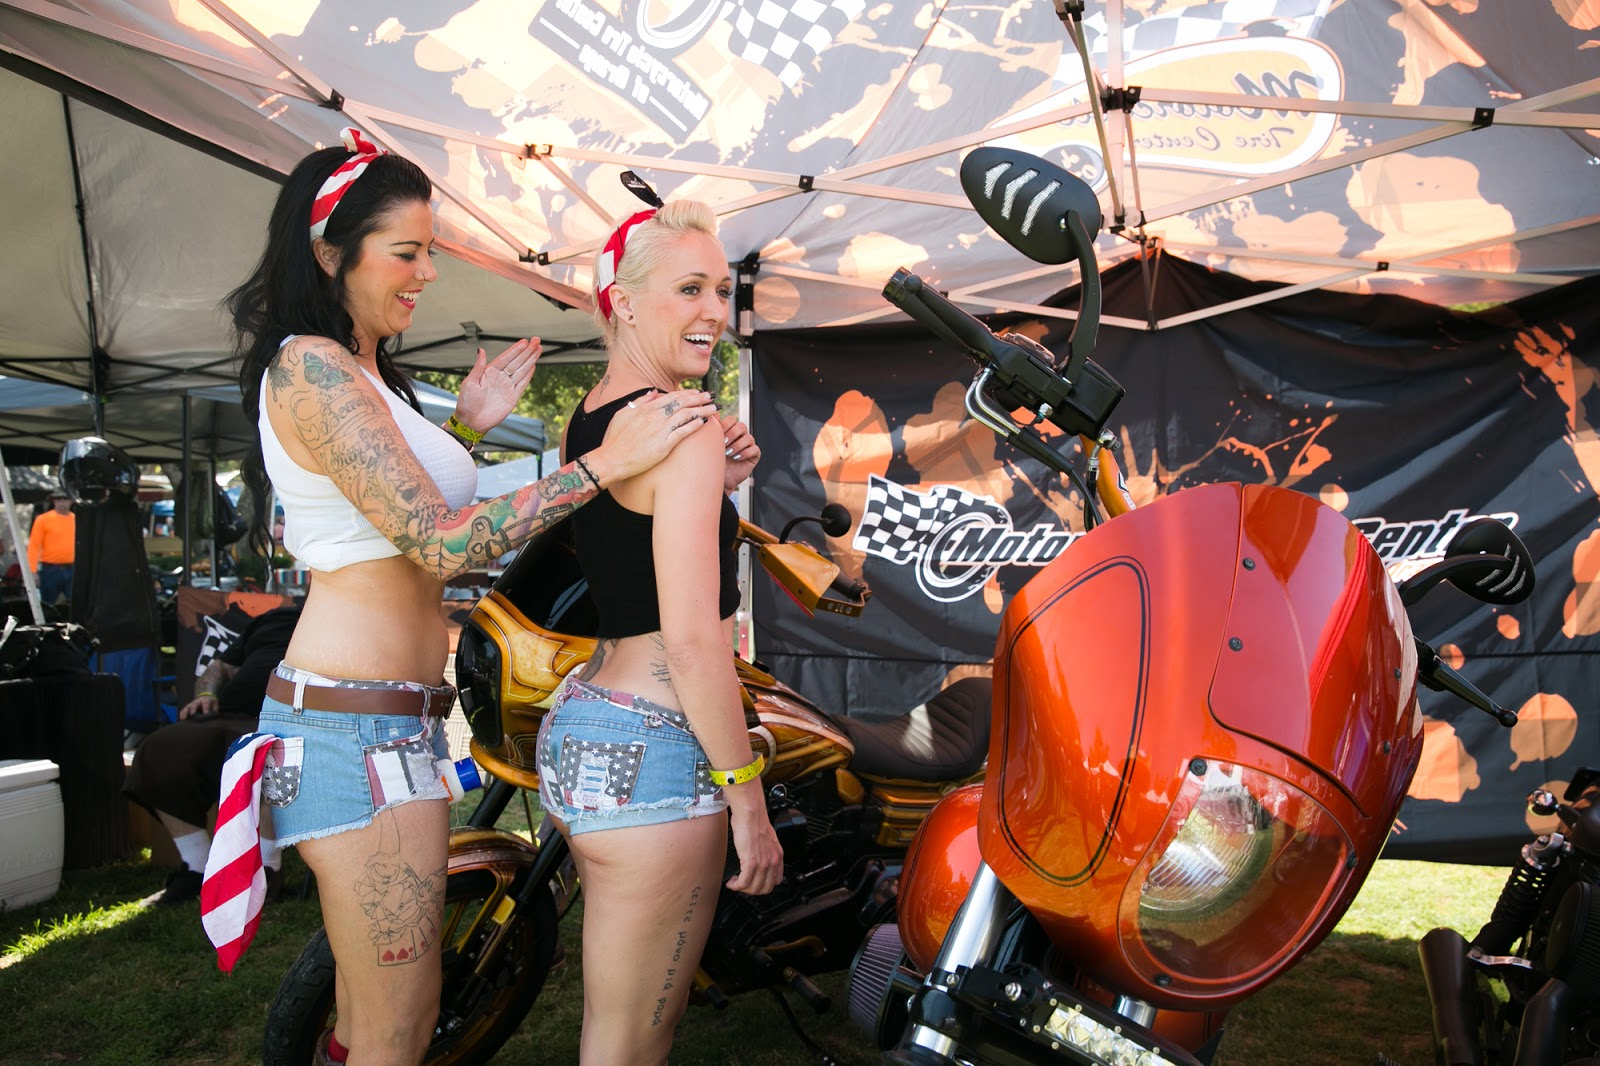 dWrenched - Kustom Kulture and Crazy Bikes: EVENT - BORN ...